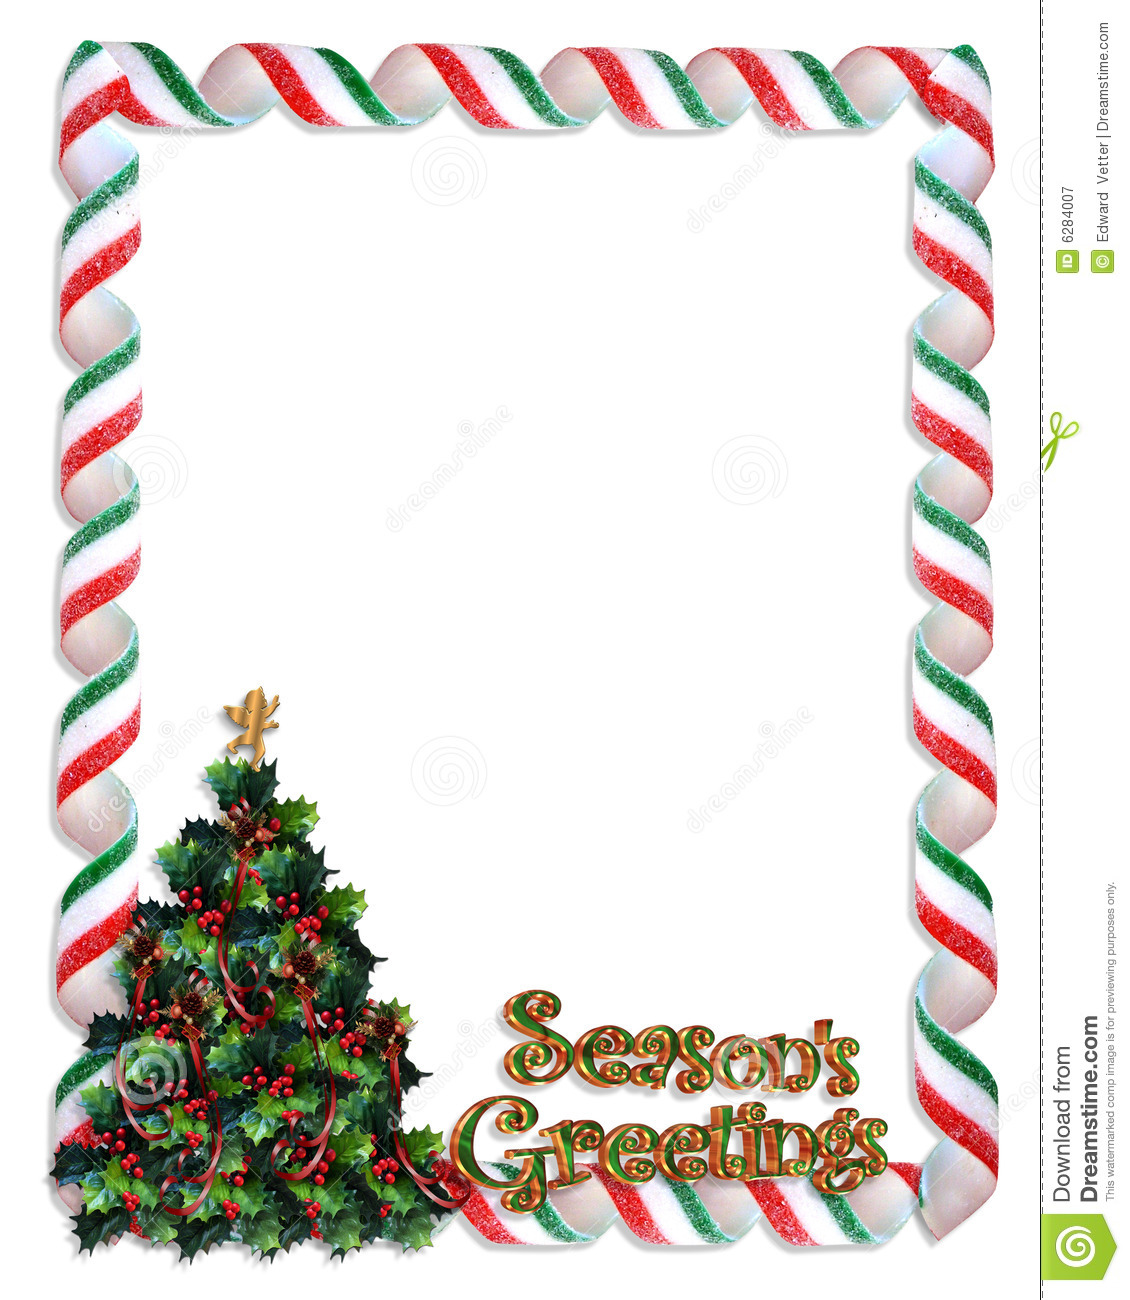 Christmas Tree Frame Border Royalty Free Stock Photography - Image ...